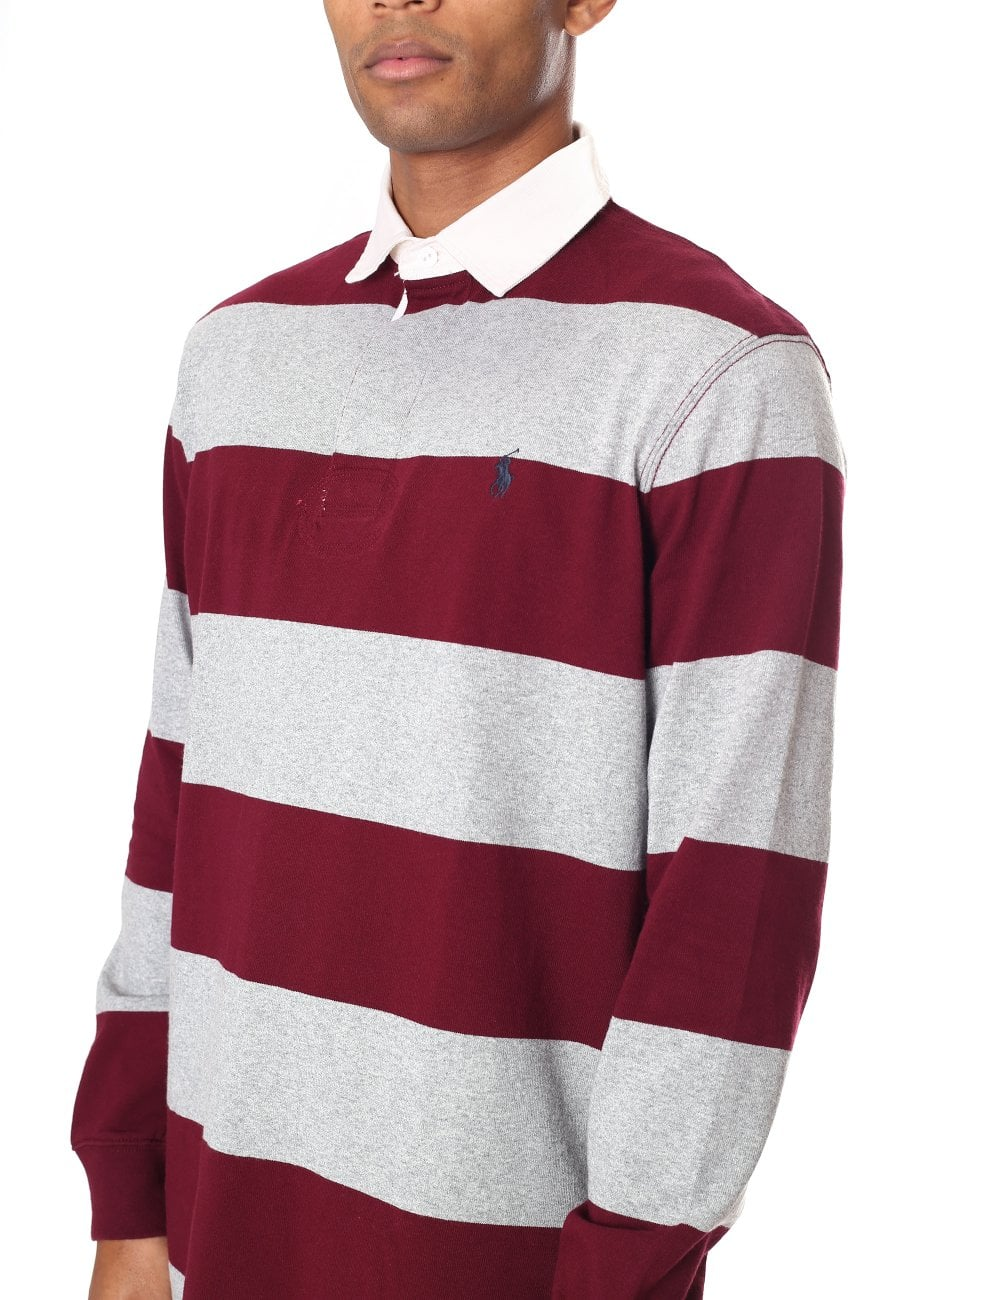 Polo Ralph Lauren Rugby Style Long Sleeve Polo Top